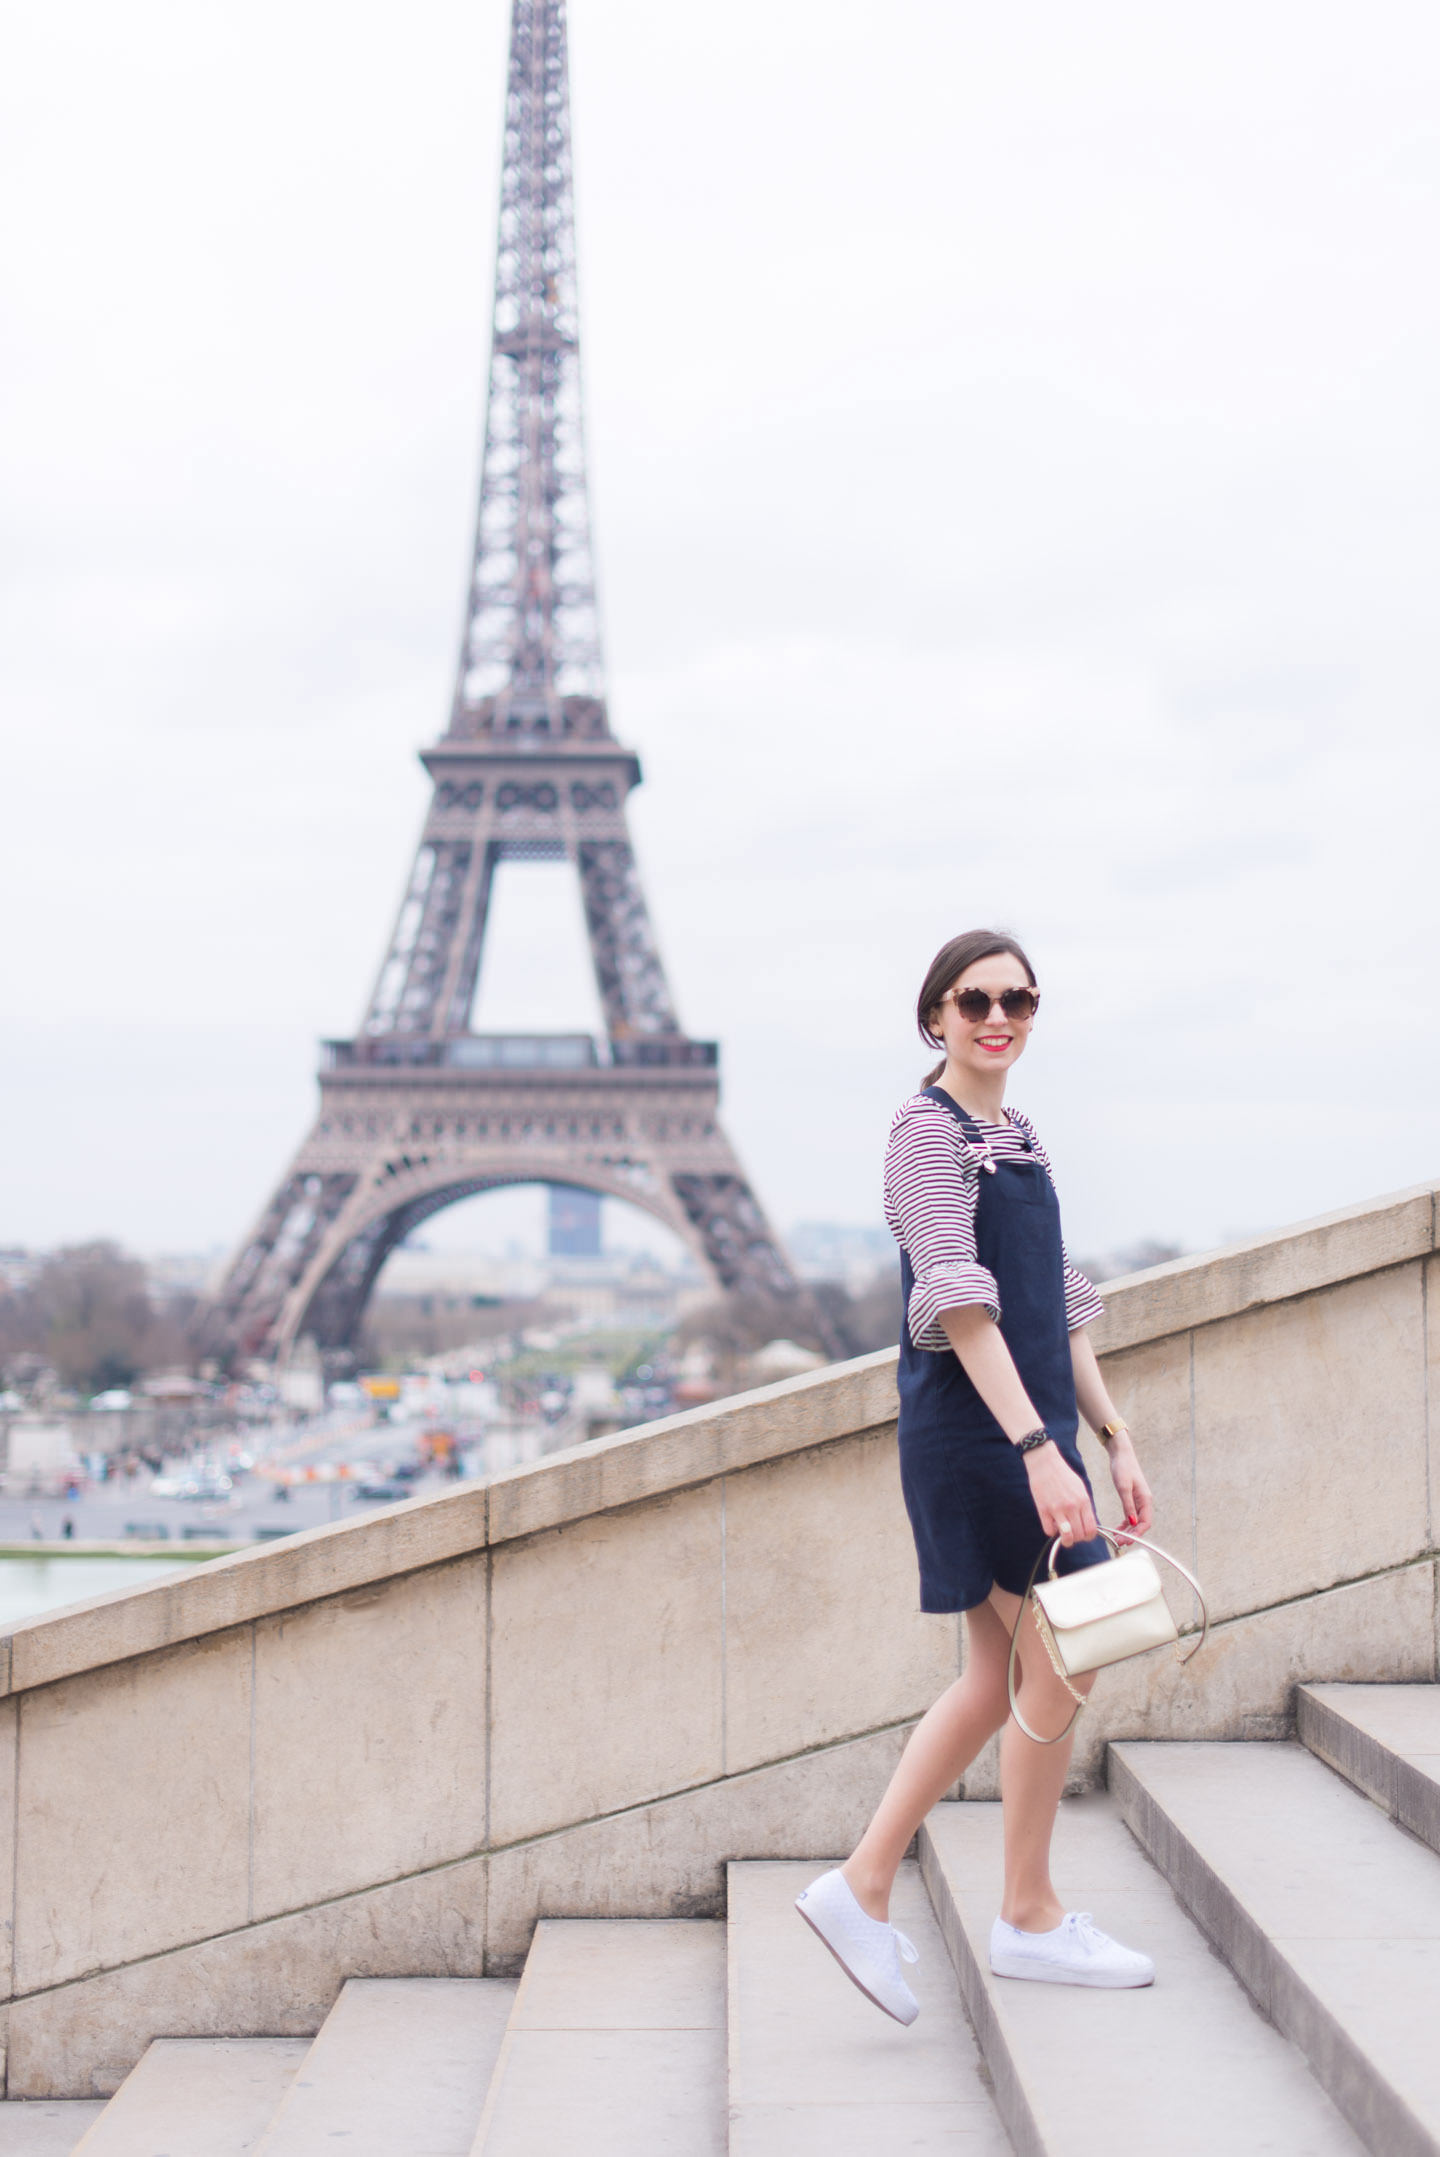 Blog-Mode-And-The-City-Lifestyle-paris-en-une-journee